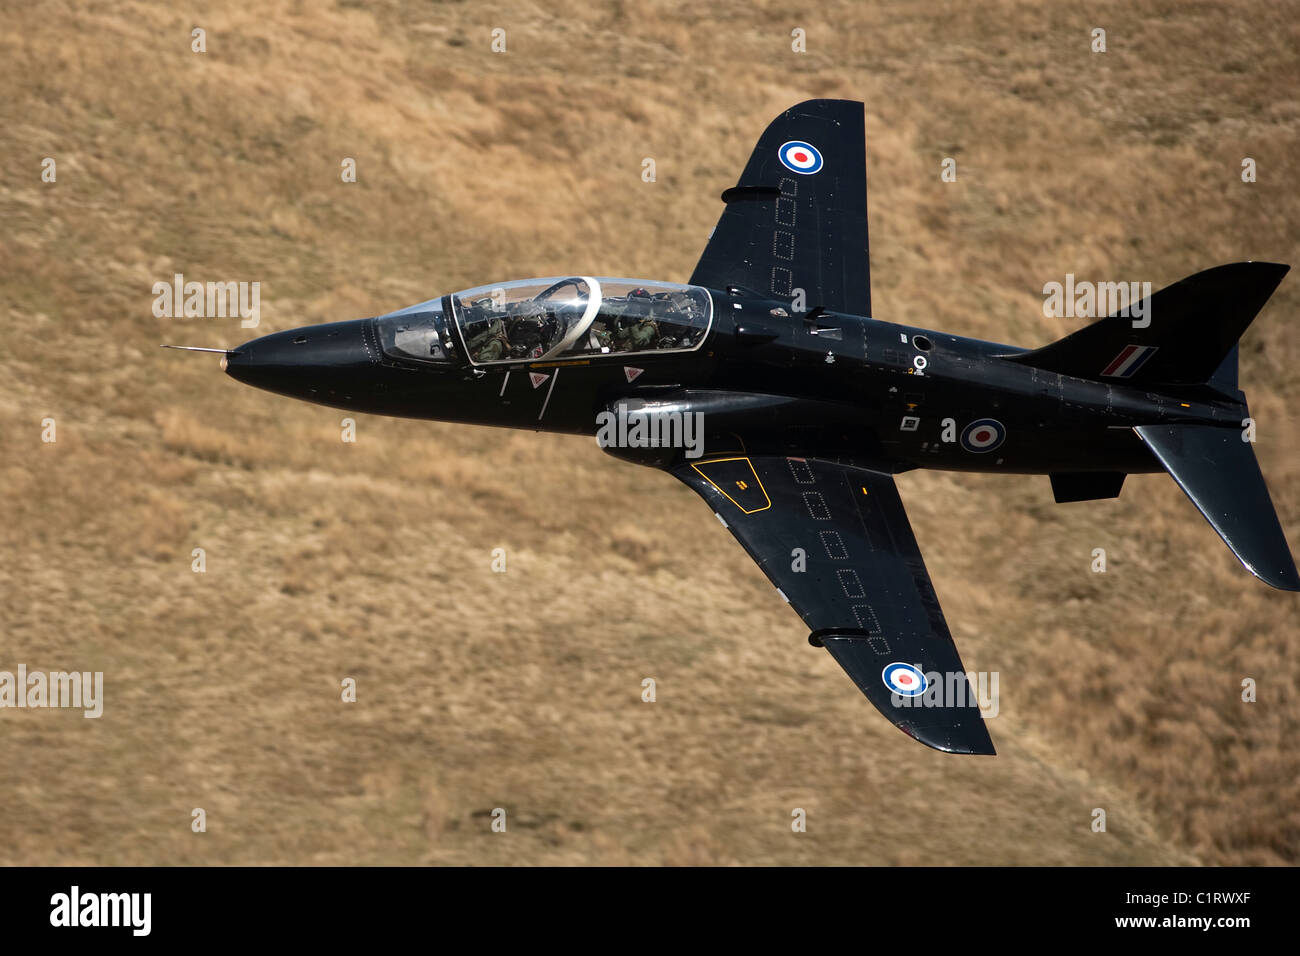 A Hawk jet trainer aircraft of the Royal Air Force. Stock Photo